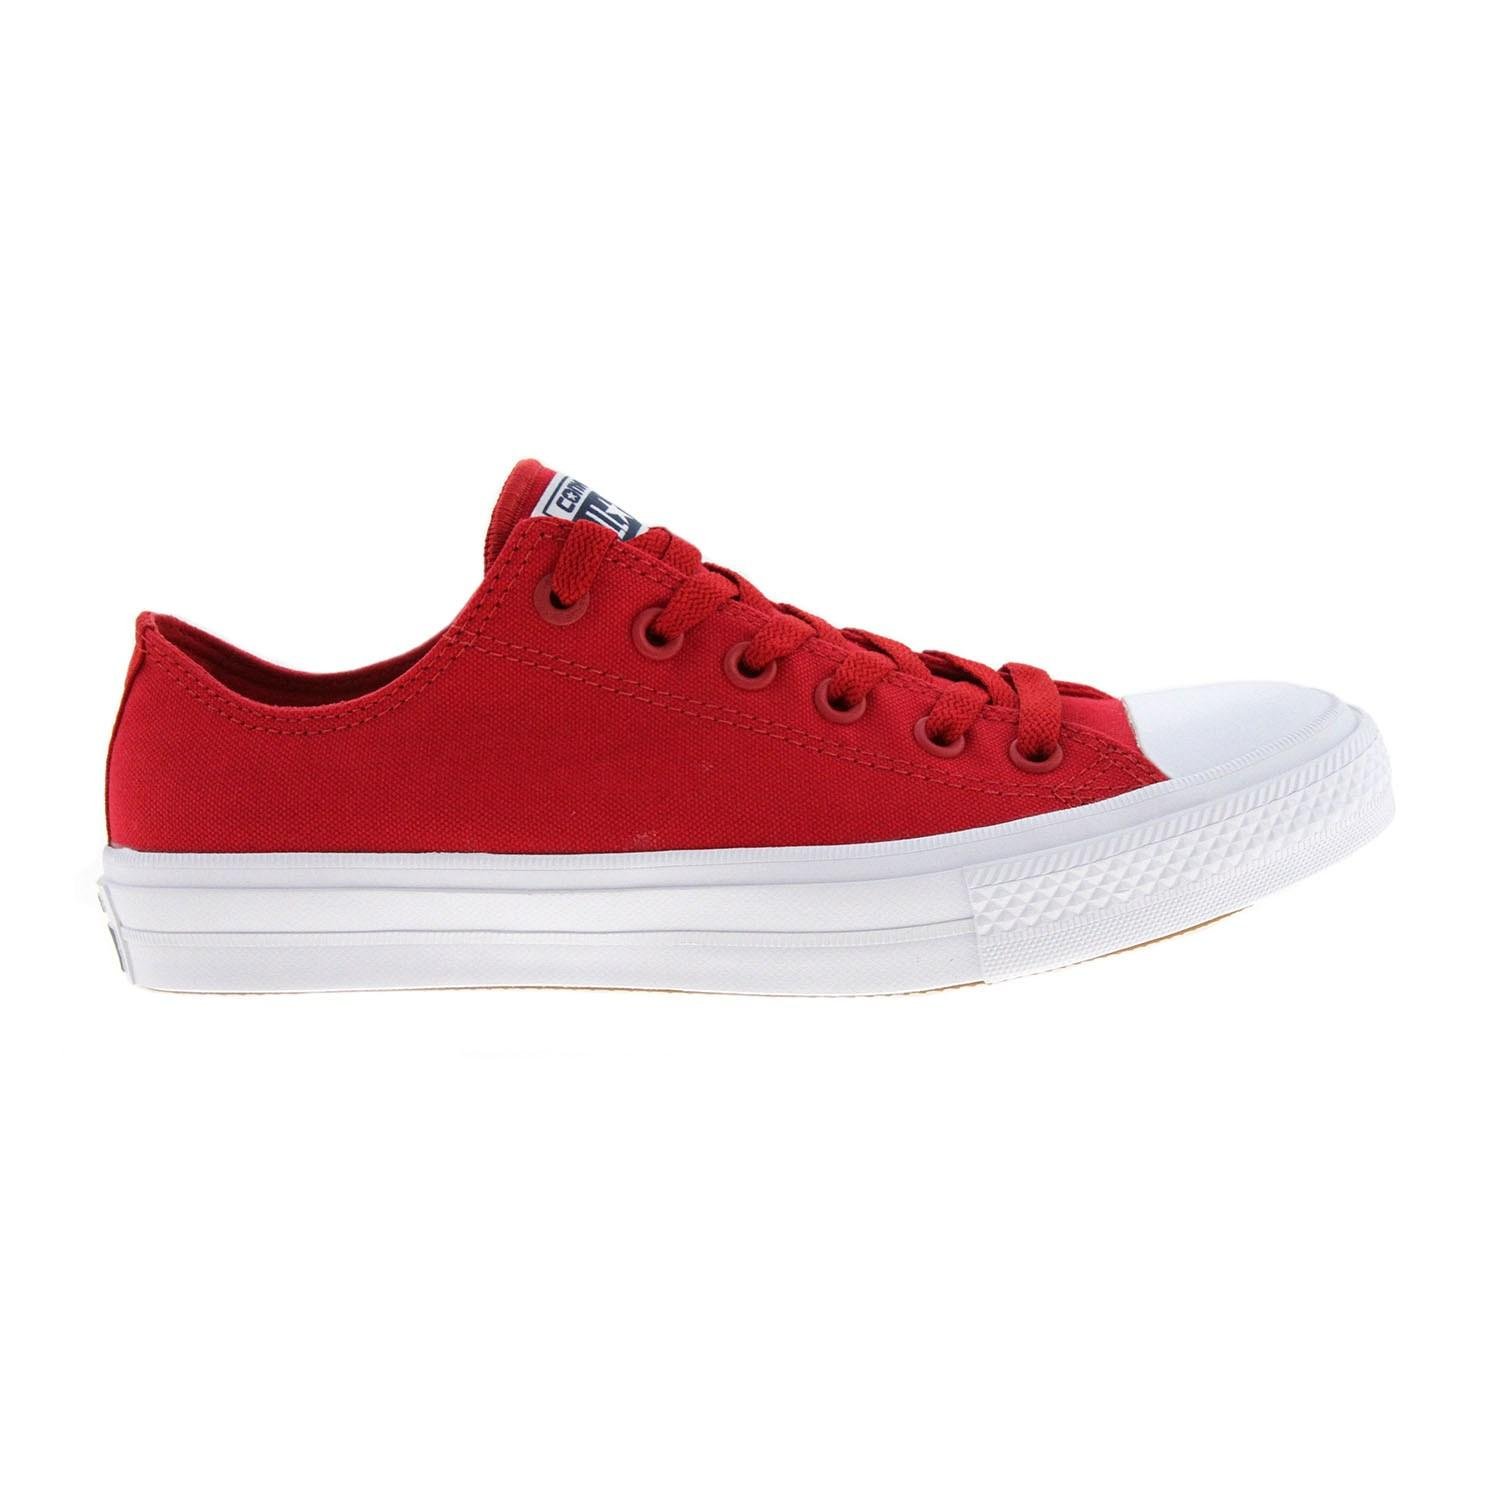 Converse Chuck Taylor All Star CT II NEW Colour Low Top Sepatu Sneakers